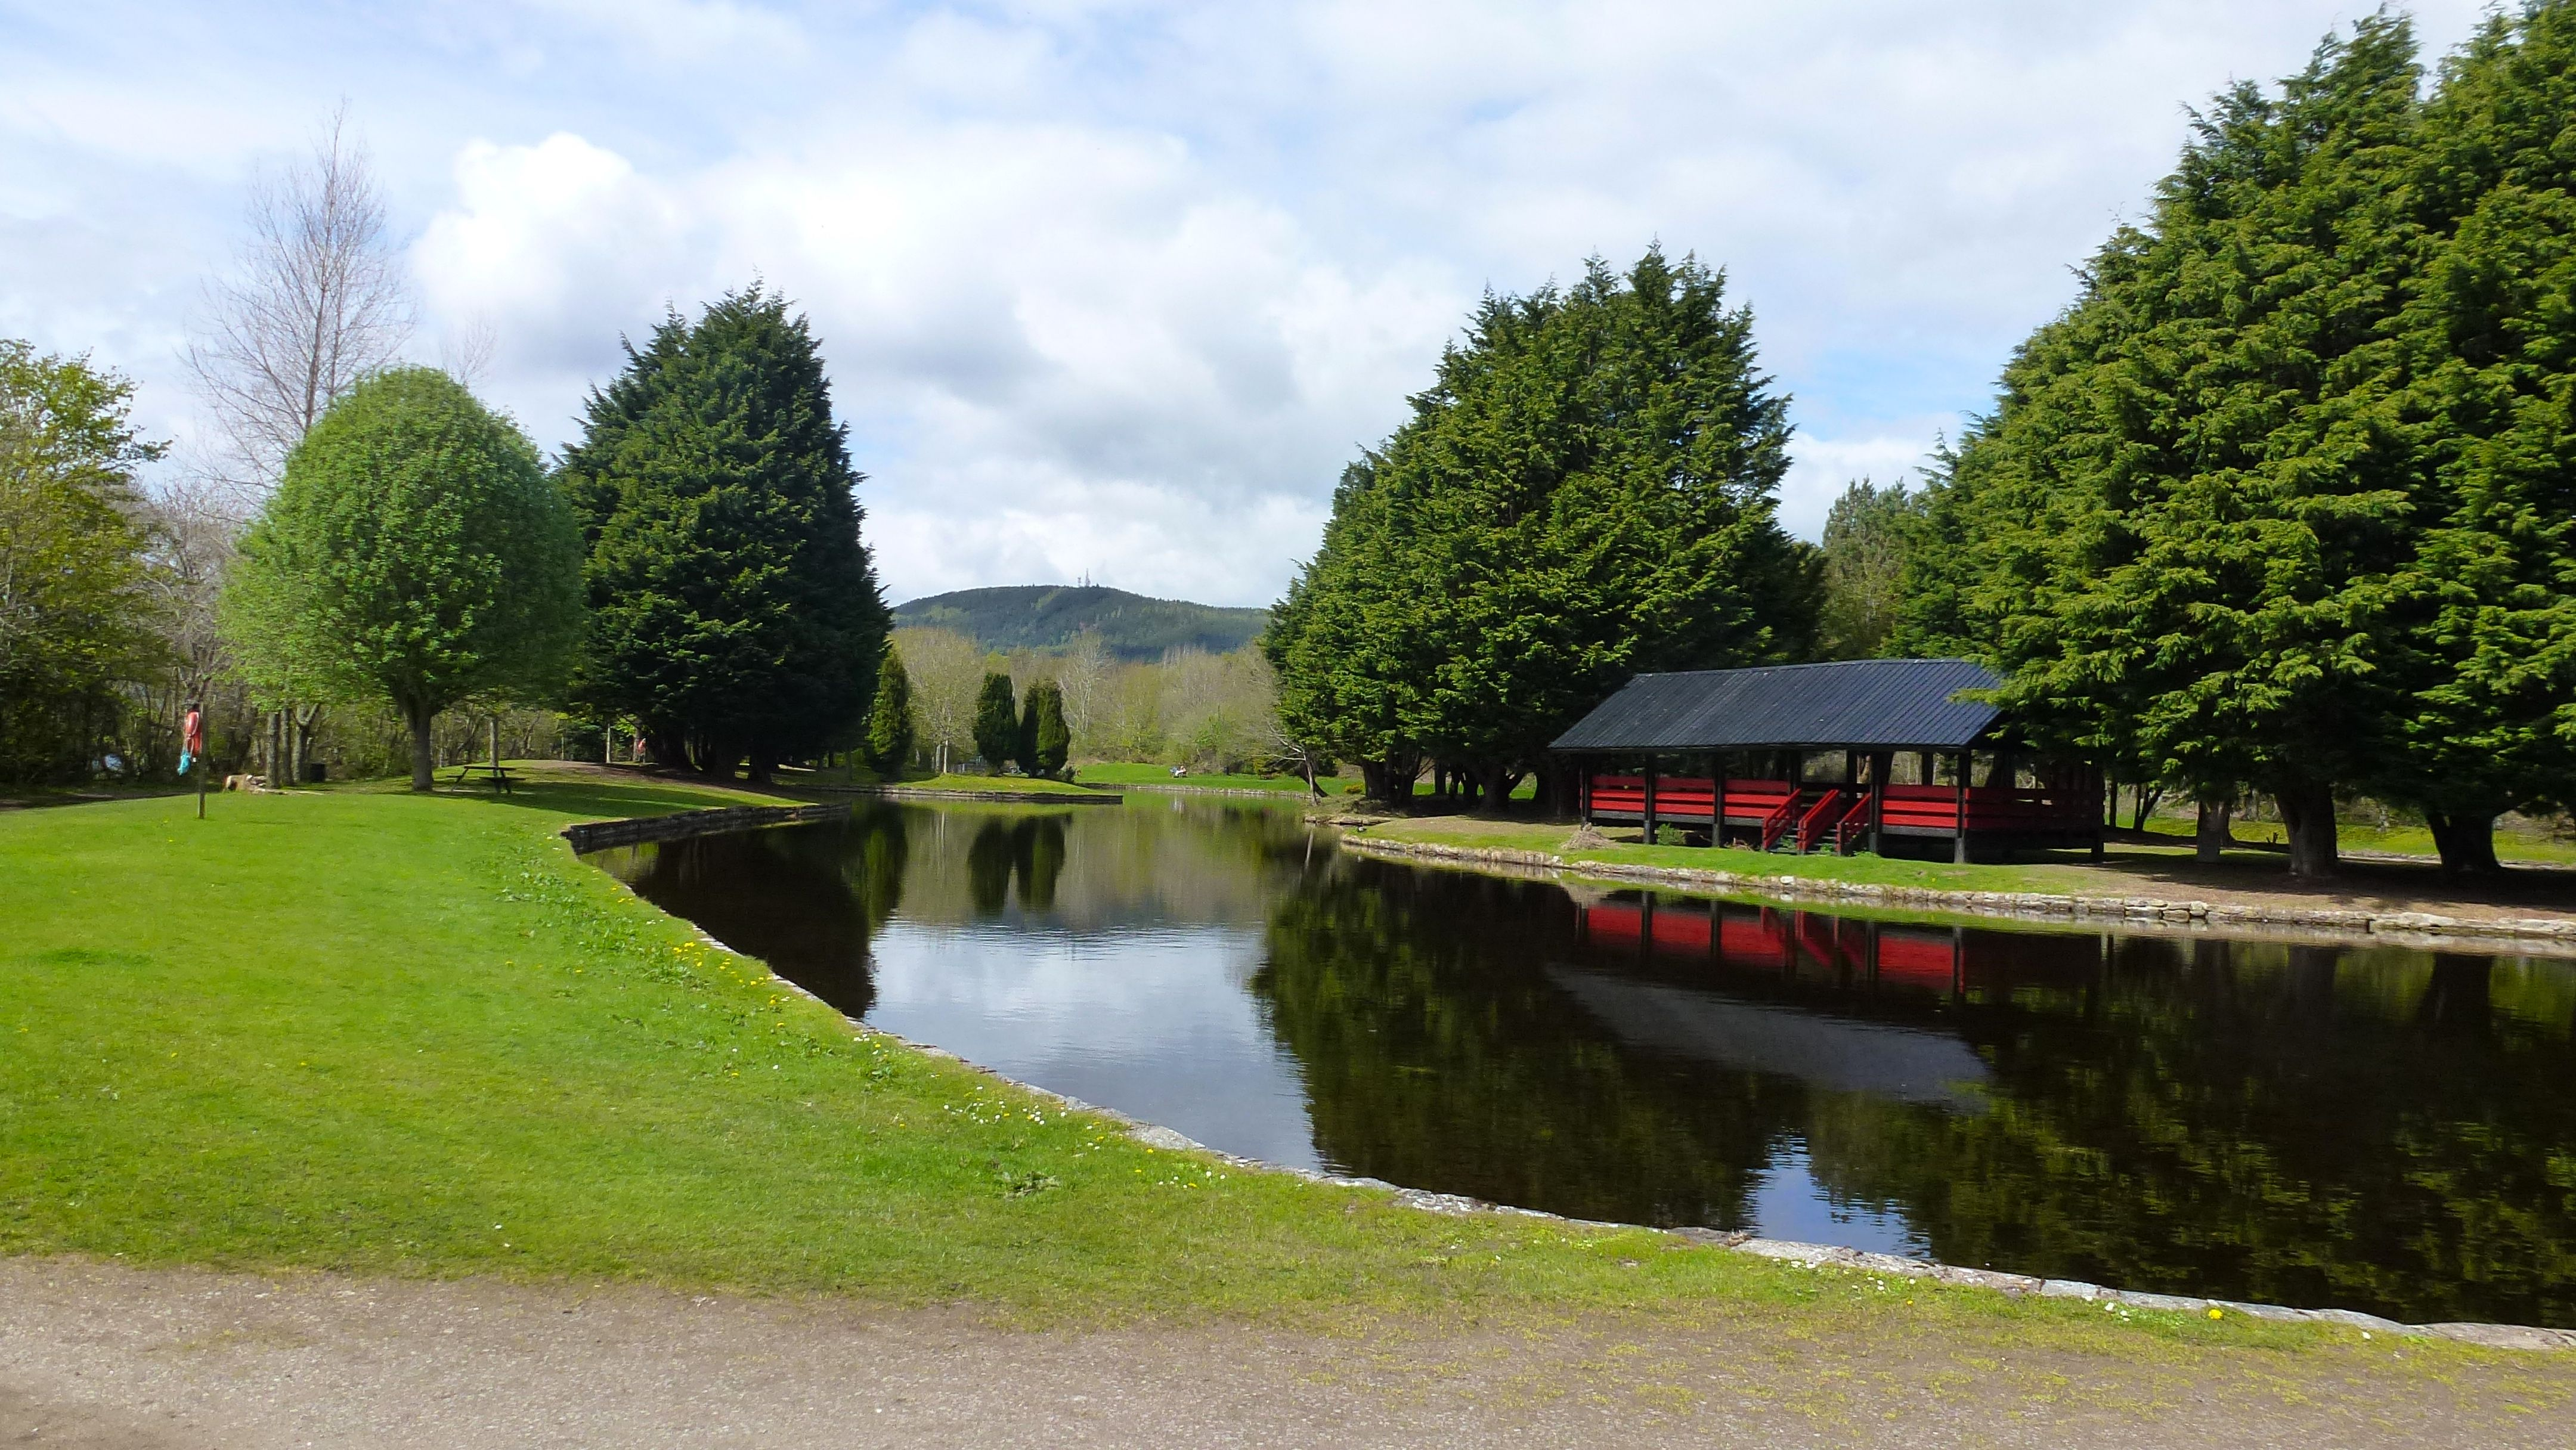 Whin Park Inverness A Great Park And Boating Pond For Kids Inverness Country Roads Park